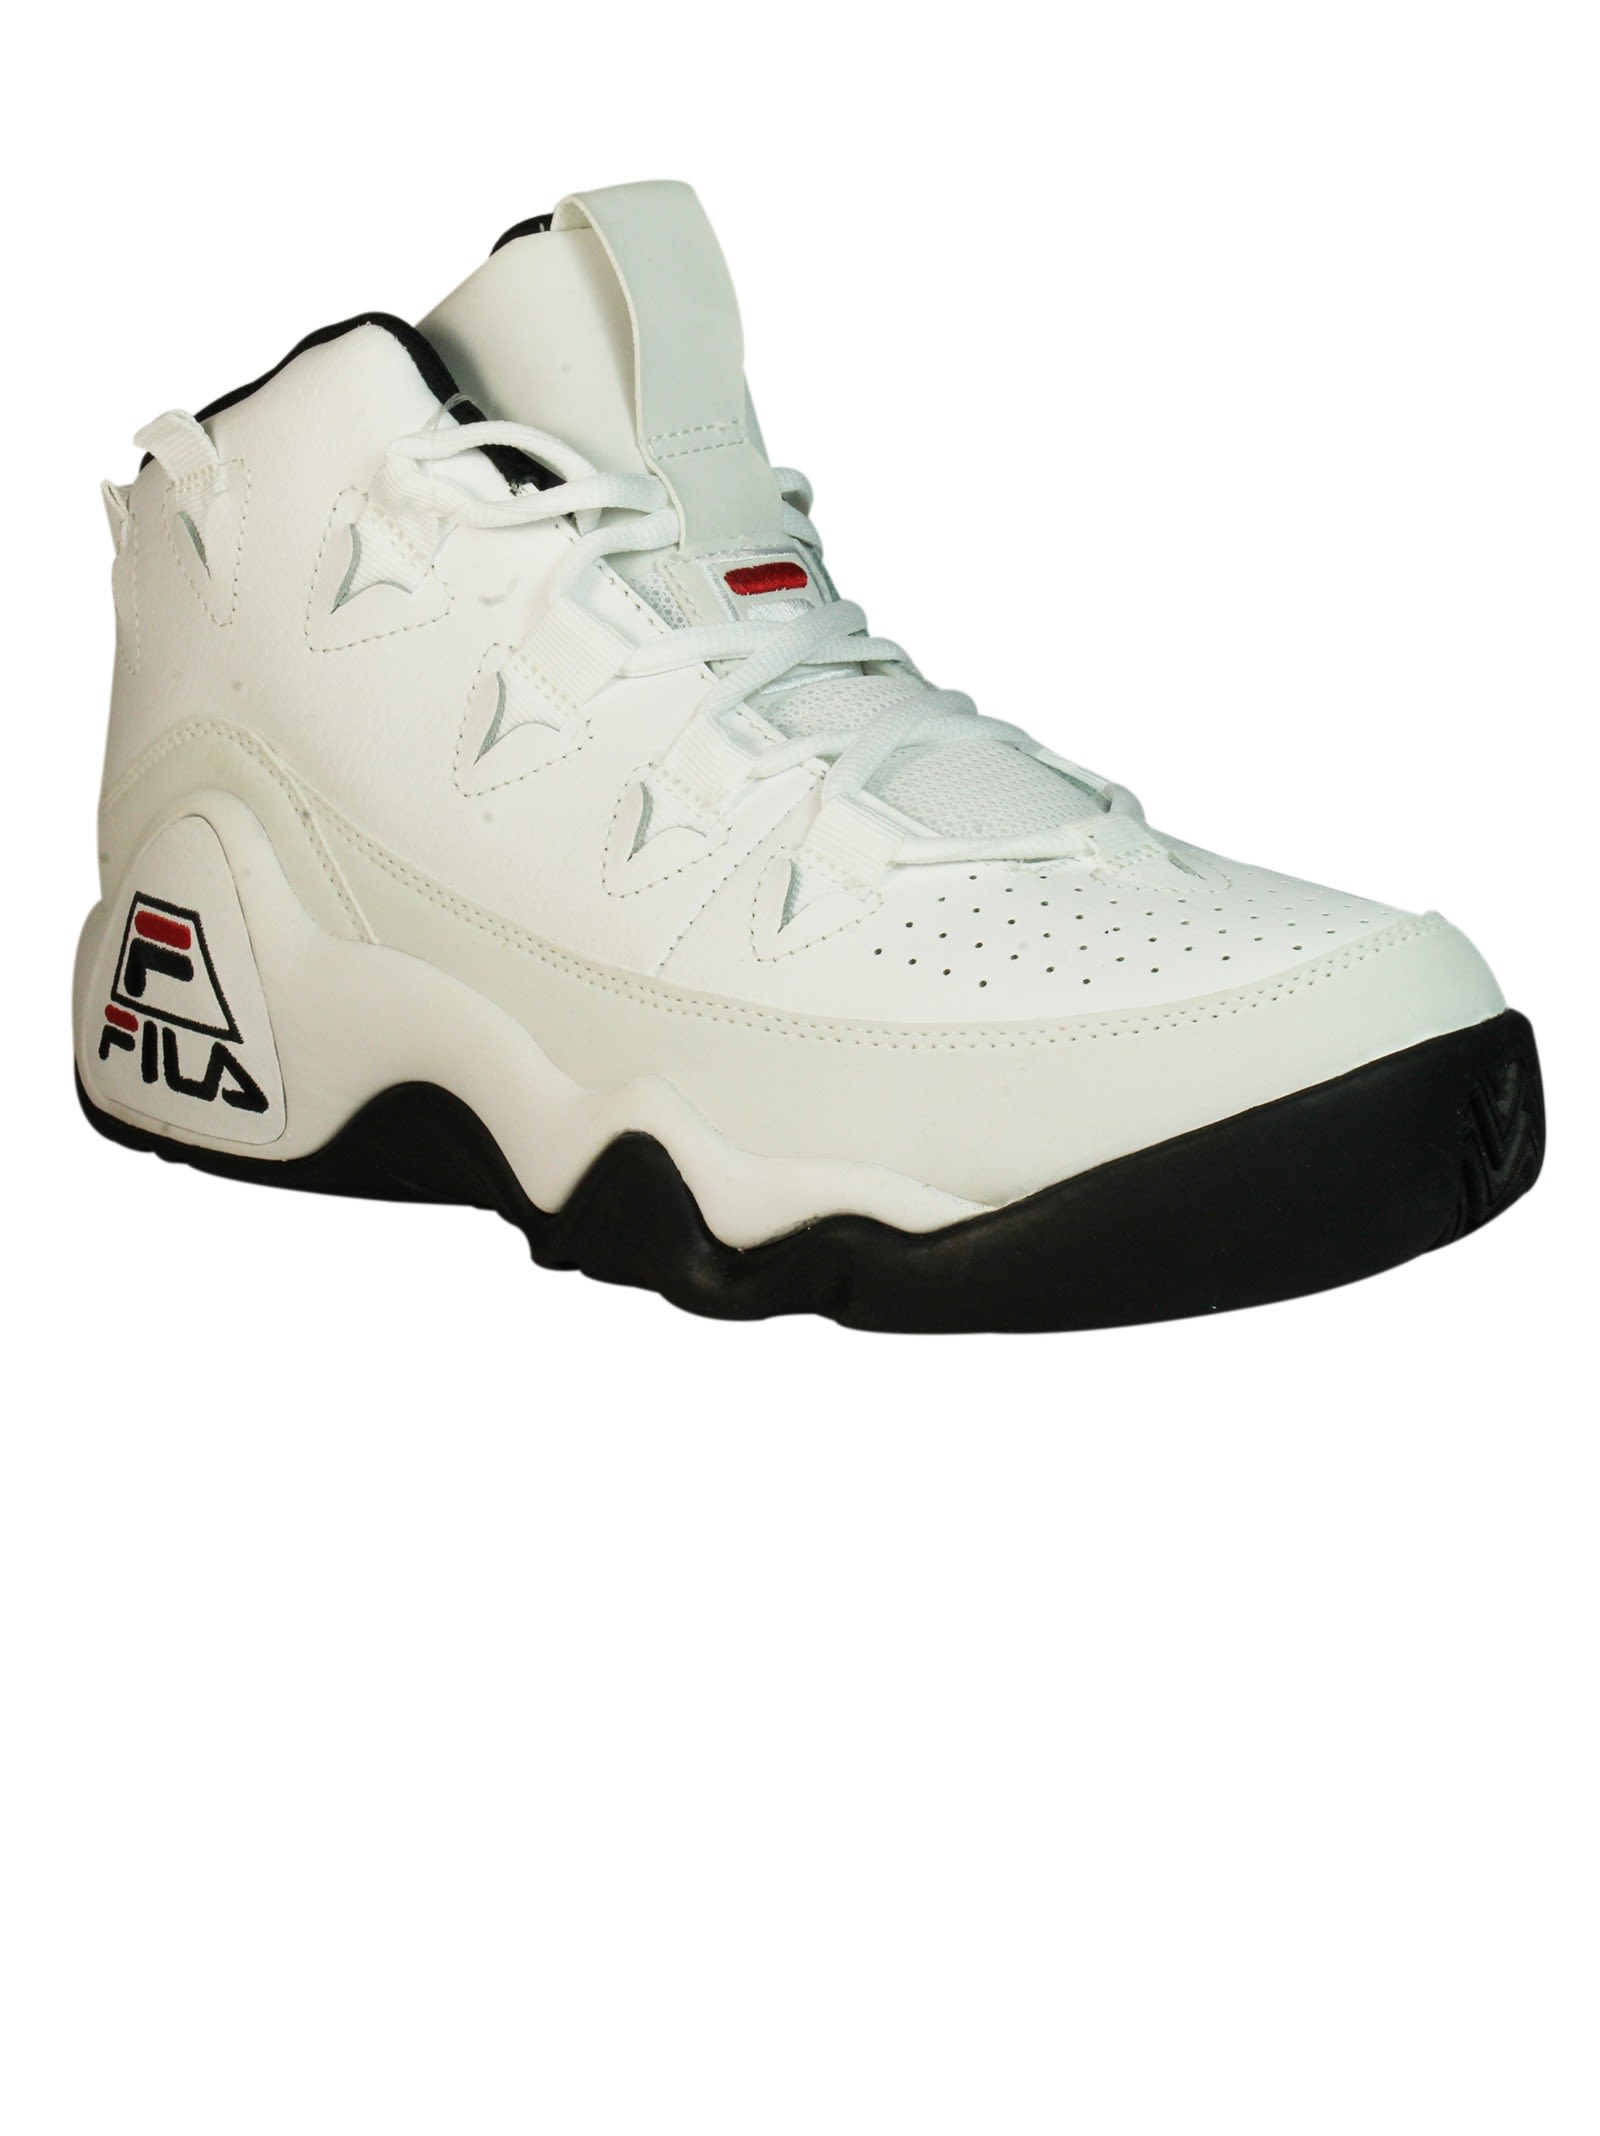 fila white sneakers. white fila 95 hi-top sneakers b